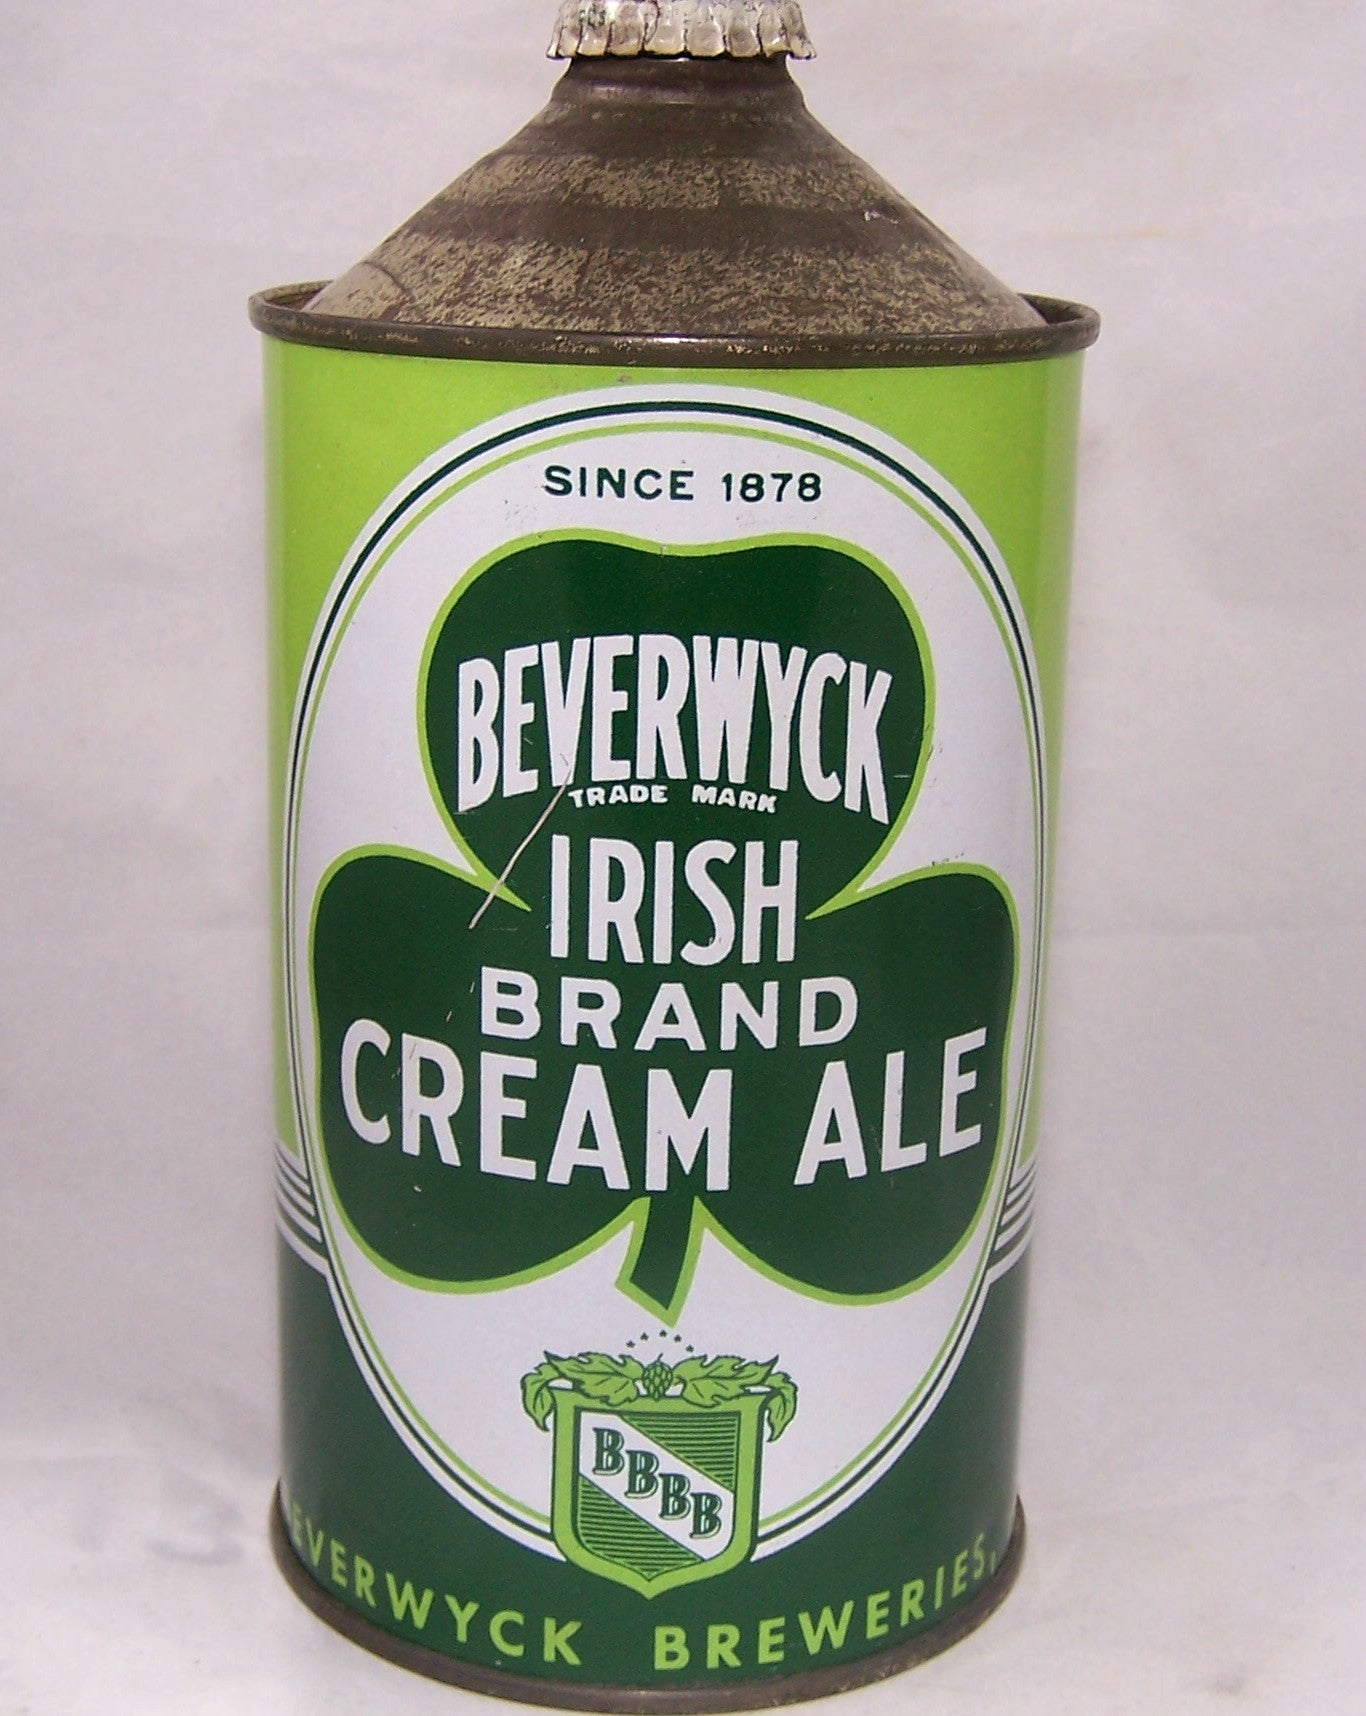 Beverwyck Irish Brand Cream Ale, USBC 203-05, Since 1878, Grade 1 Sold on 09/16/16